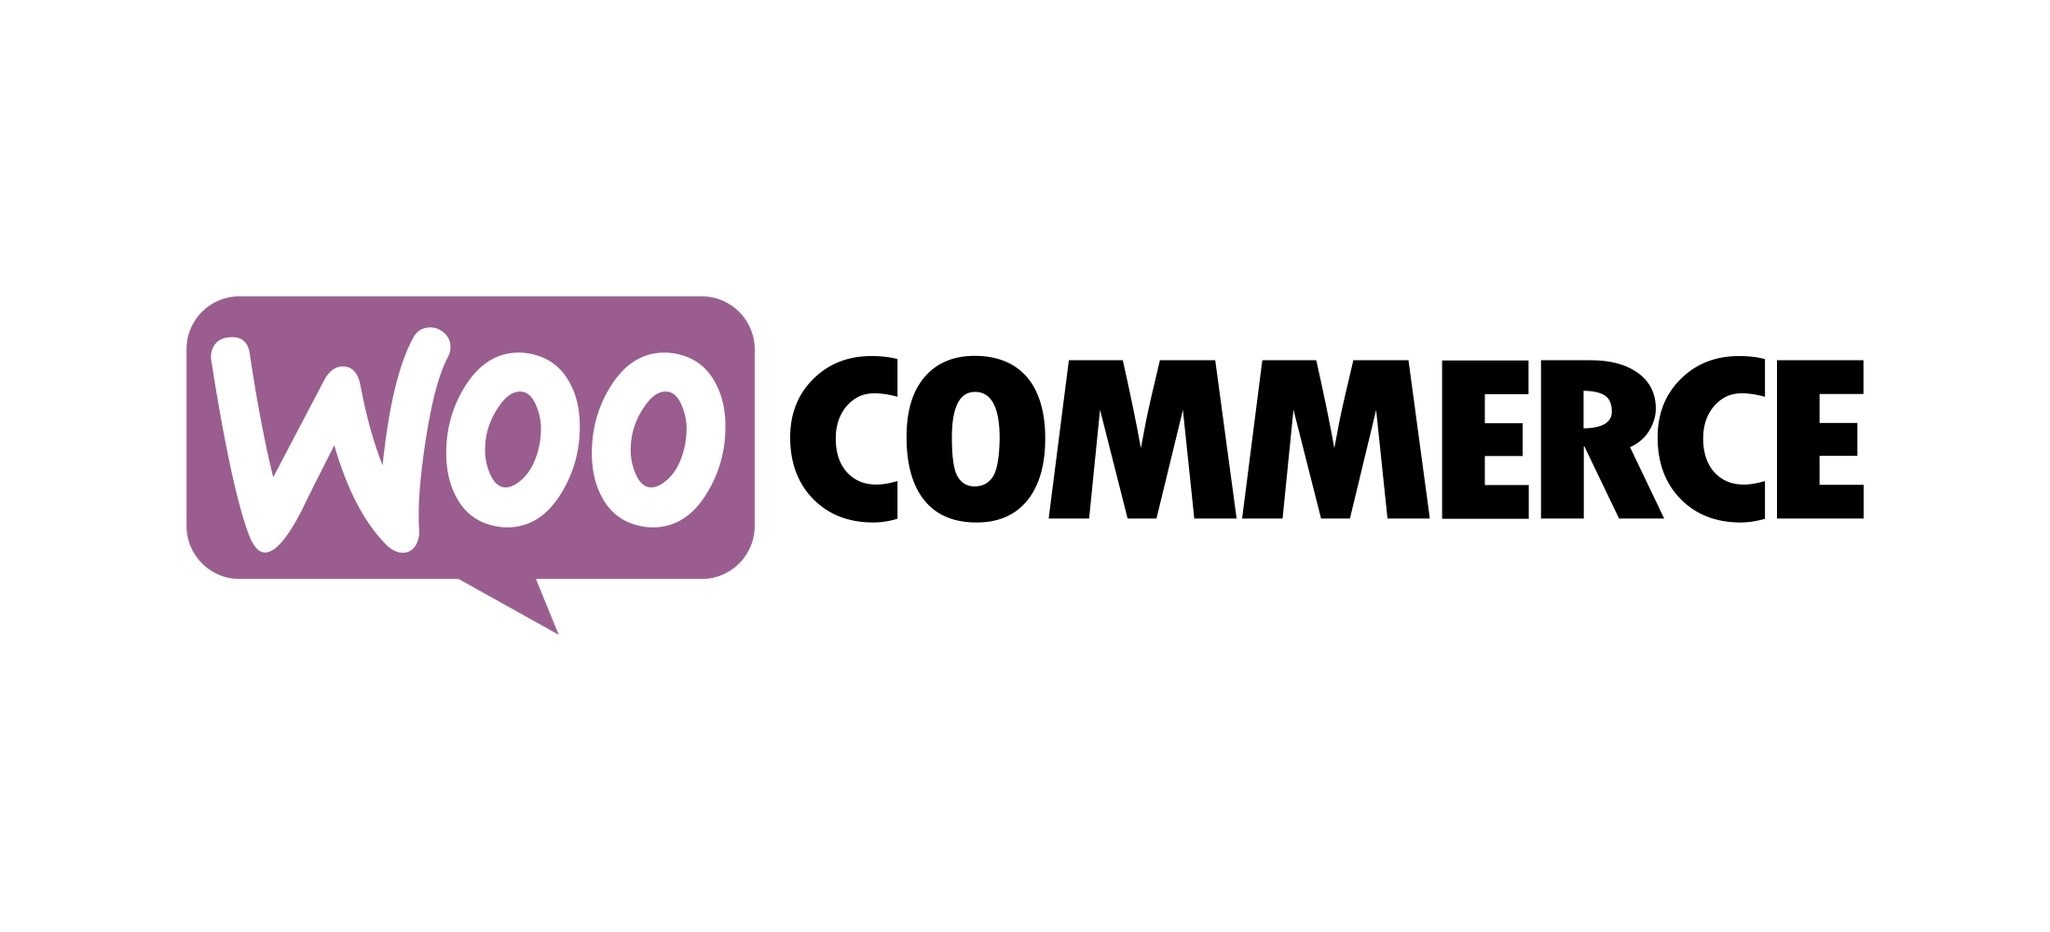 Top 10 Subscription eCommerce Platforms for 2019 woocommerce